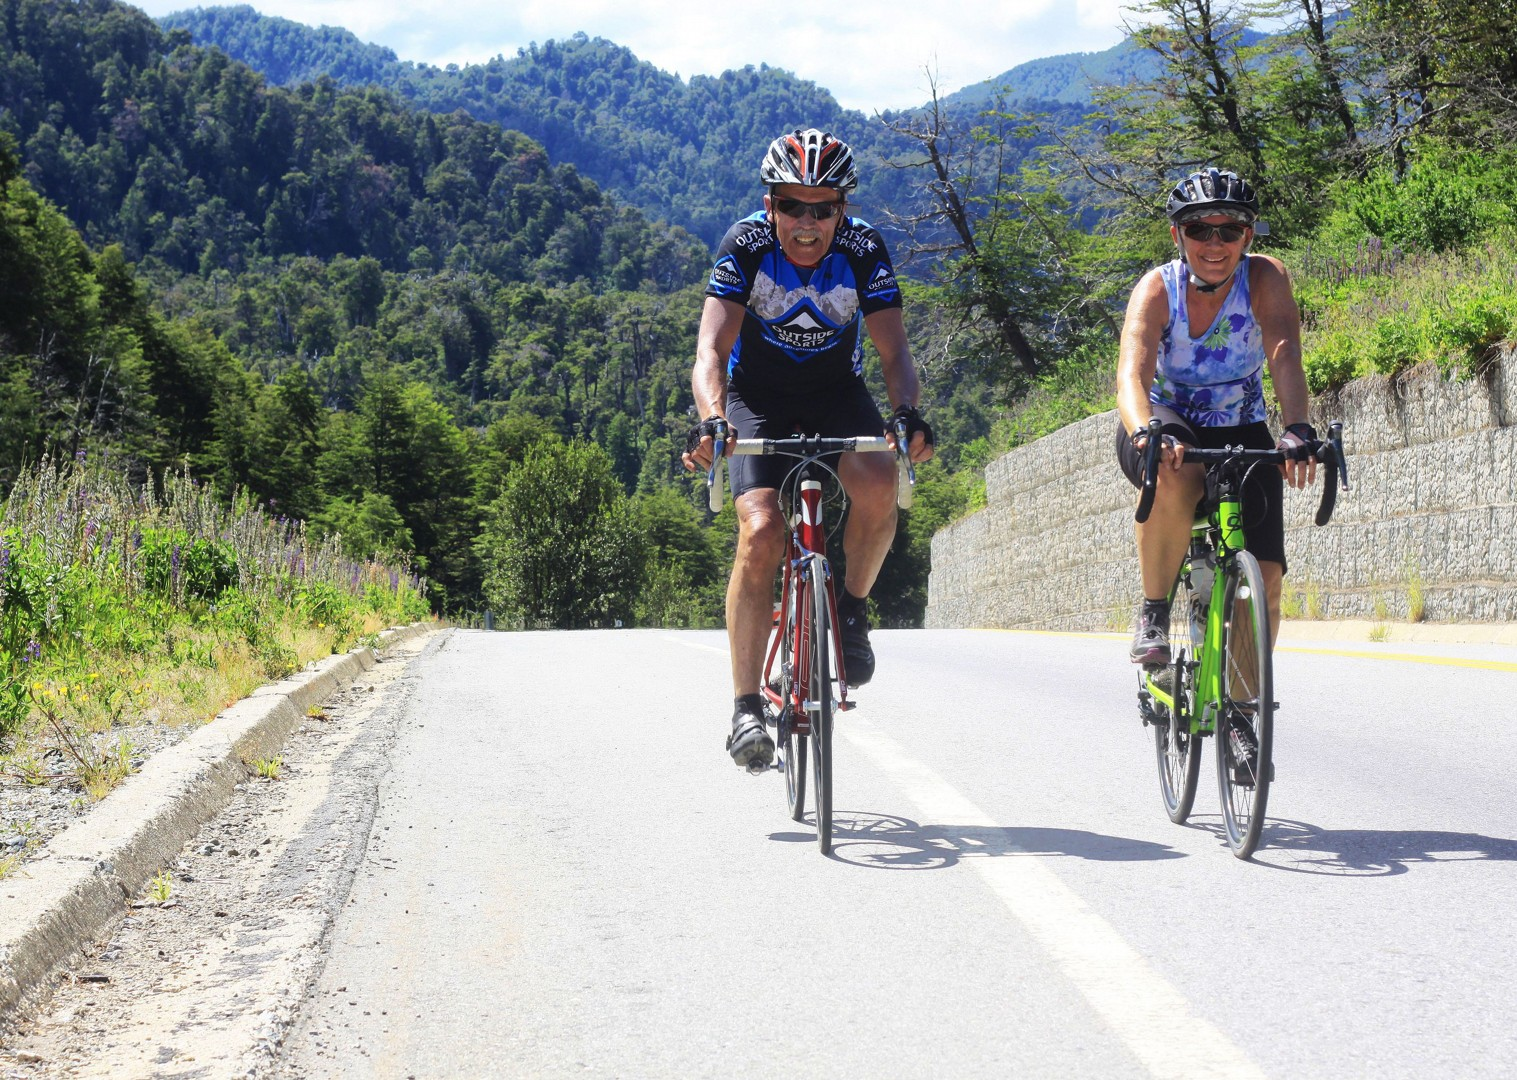 guided-road-cycling-holiday-lake-district-explorer-chile-and-argentina-volcan-osorno.jpg - Chile and Argentina - Lake District Road Explorer - Road Cycling